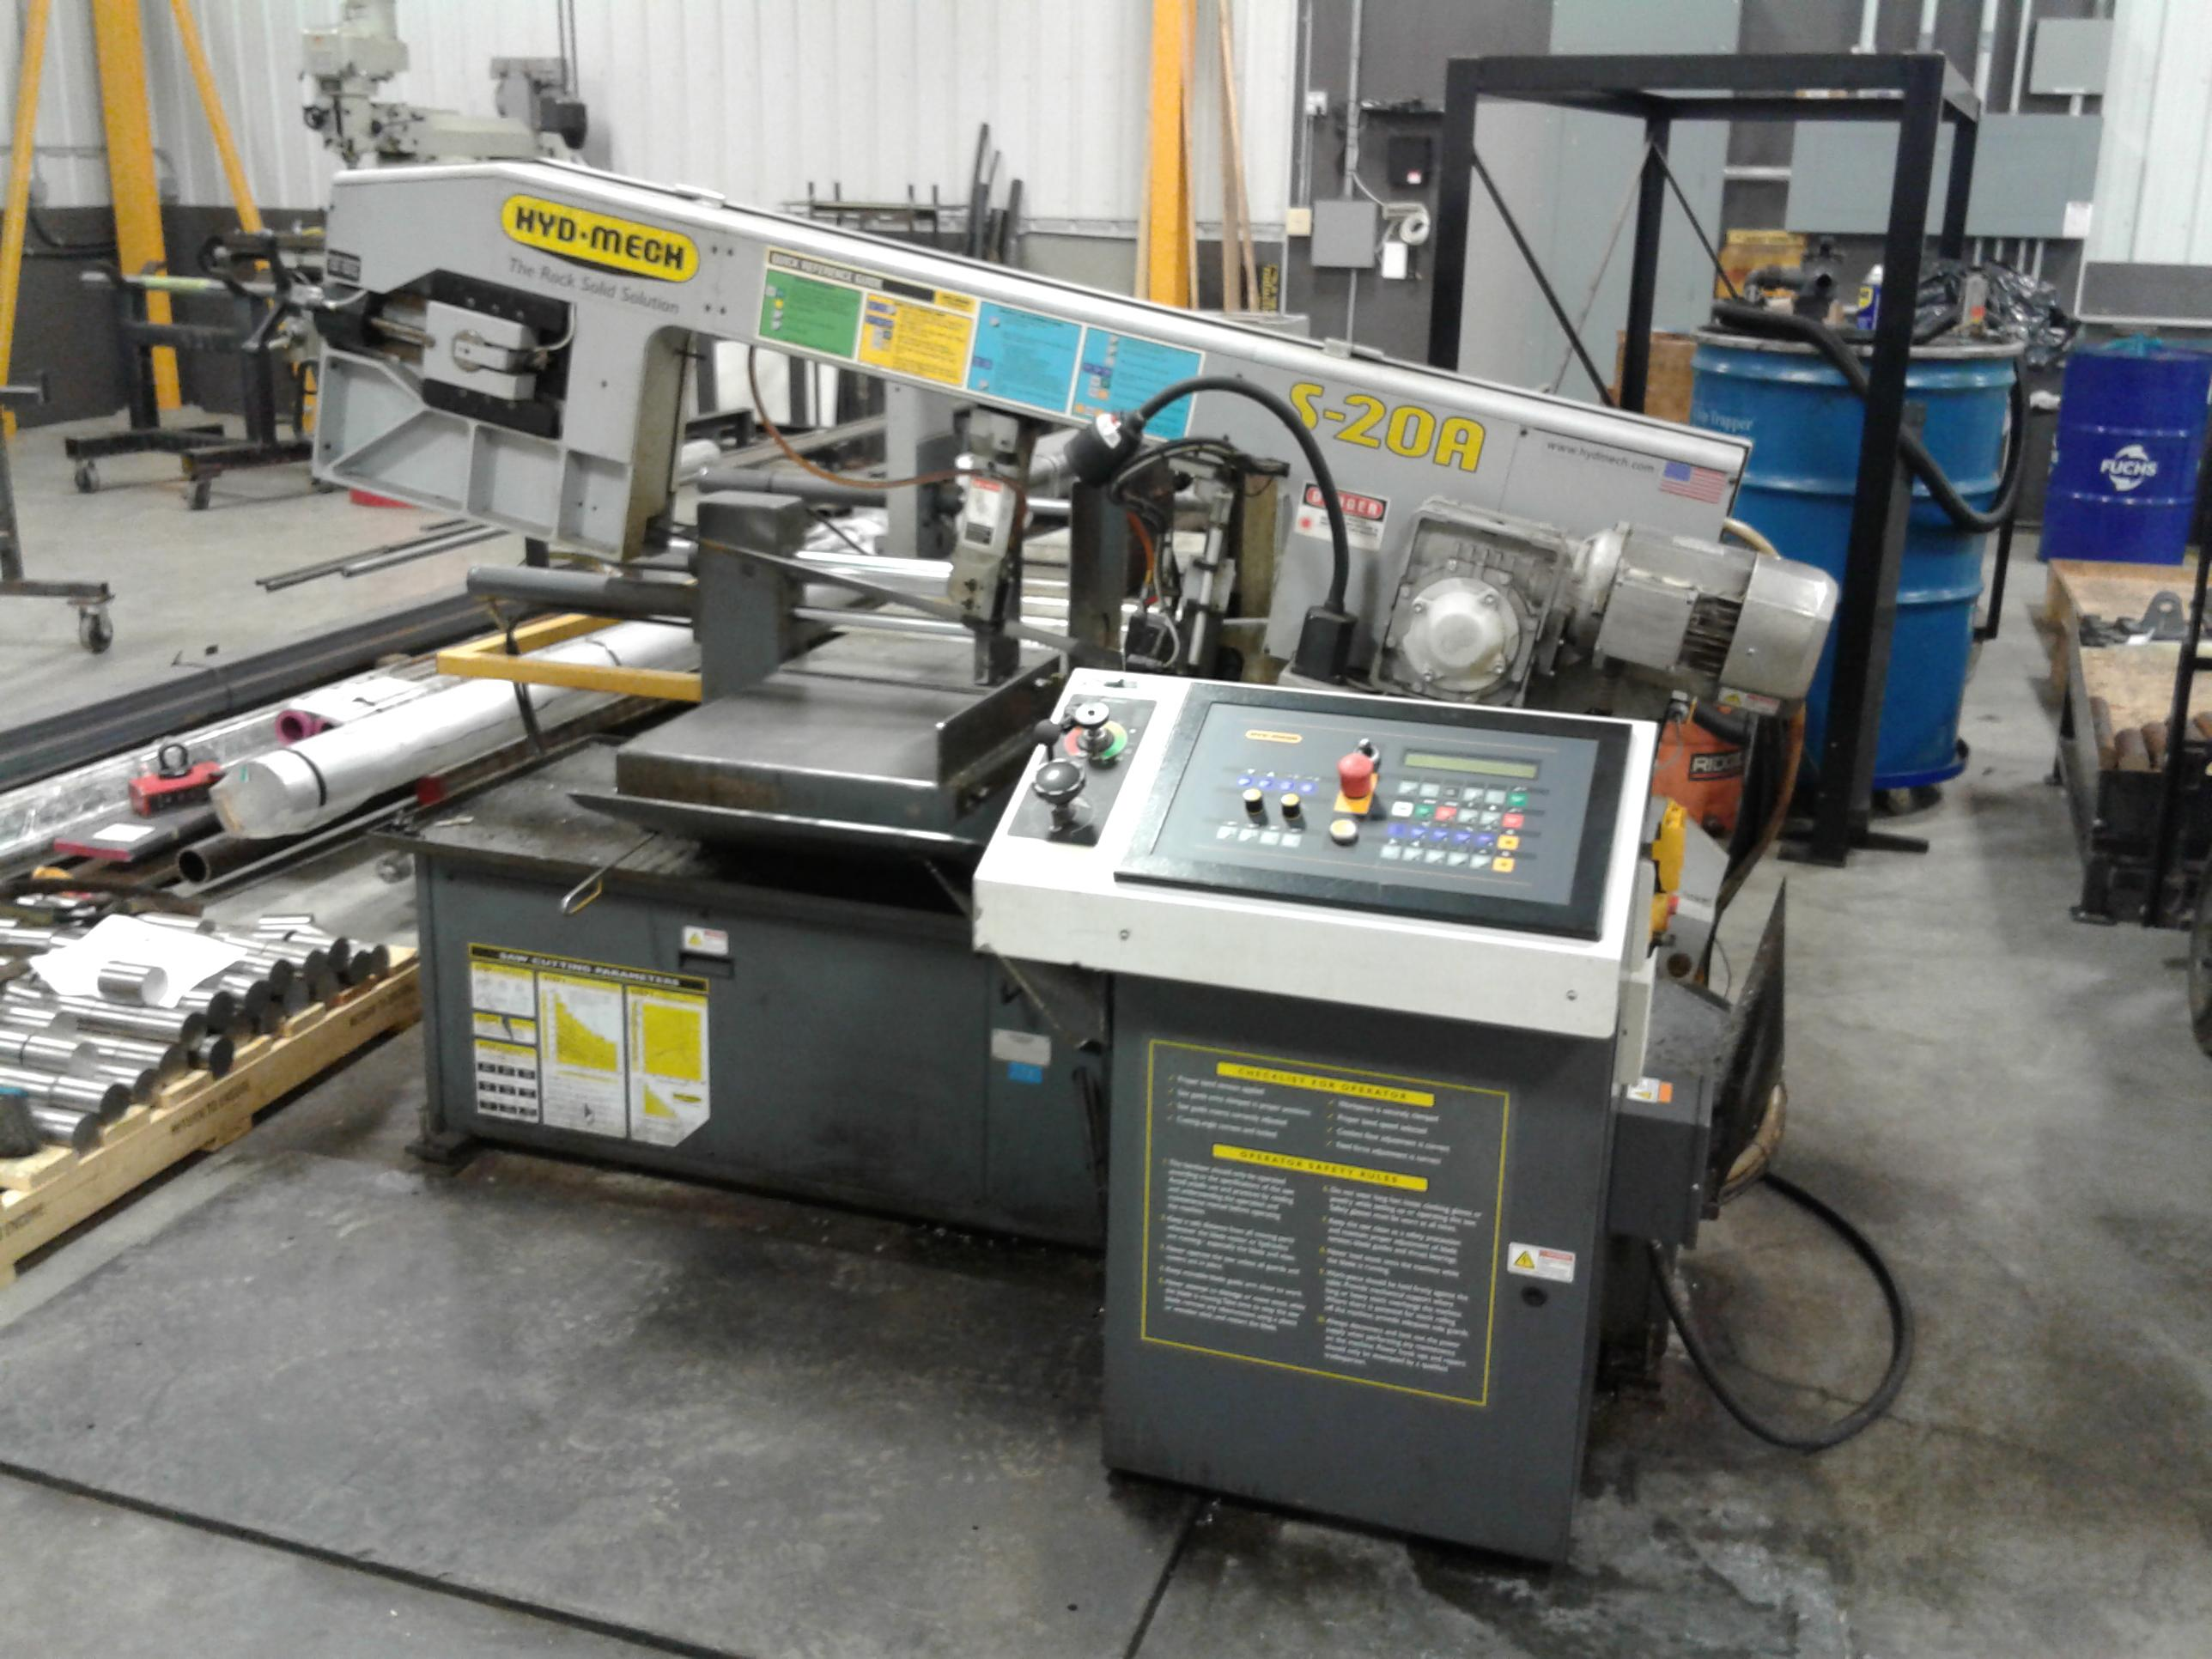 "Hyd-Mech S-20A Automatic Scissor-Type Horizontal Band Saw, 13"" x 18"" Capacity, 1"" Blade, PLC Control, Vices, 60° One-Way Miter, Out-Of-Stock Switch, Flood Coolant, 2011"